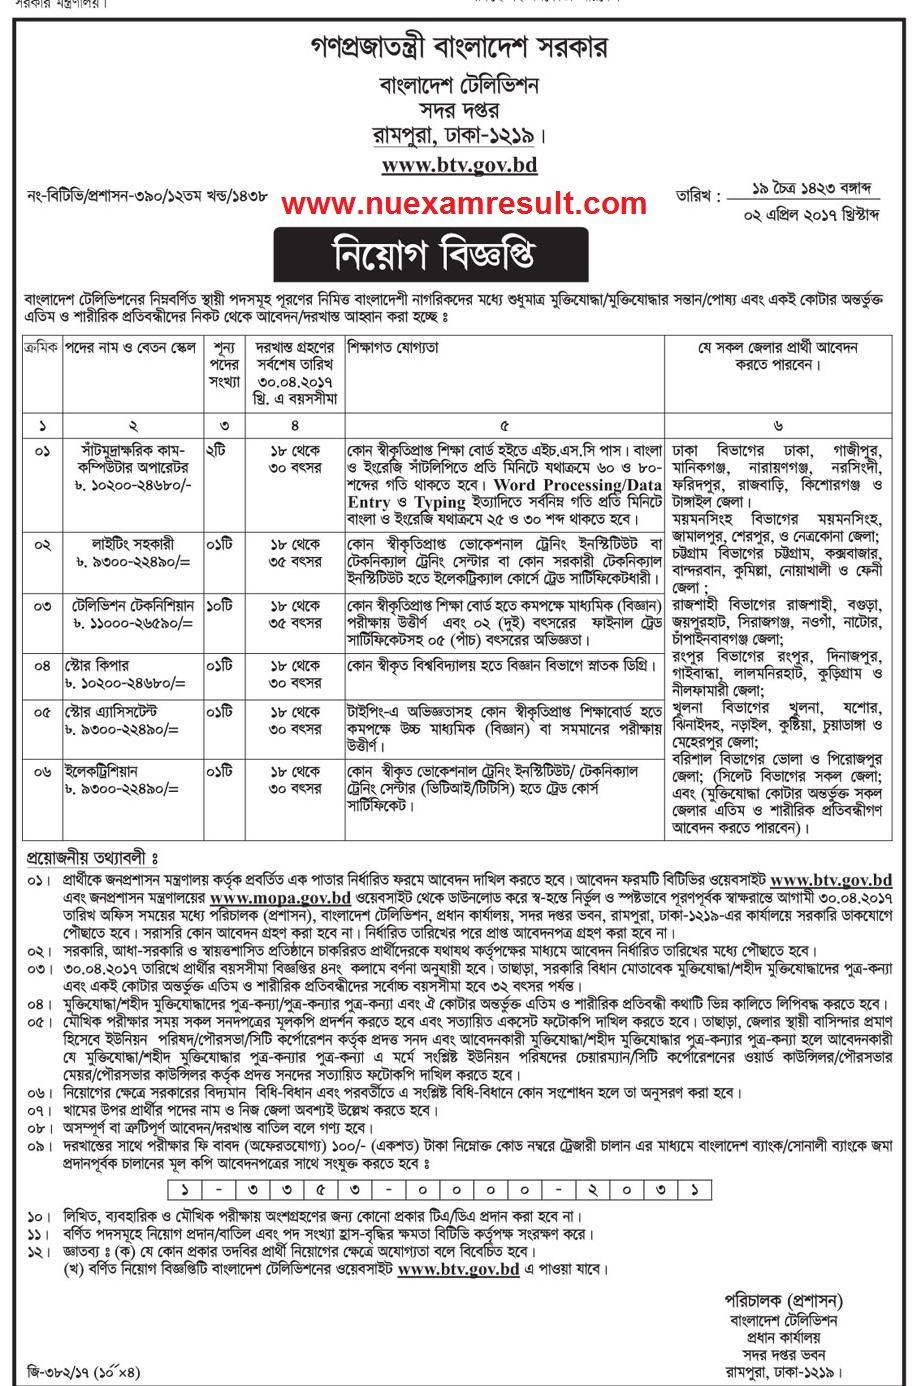 Exam Result - National University Admission Result & Notice